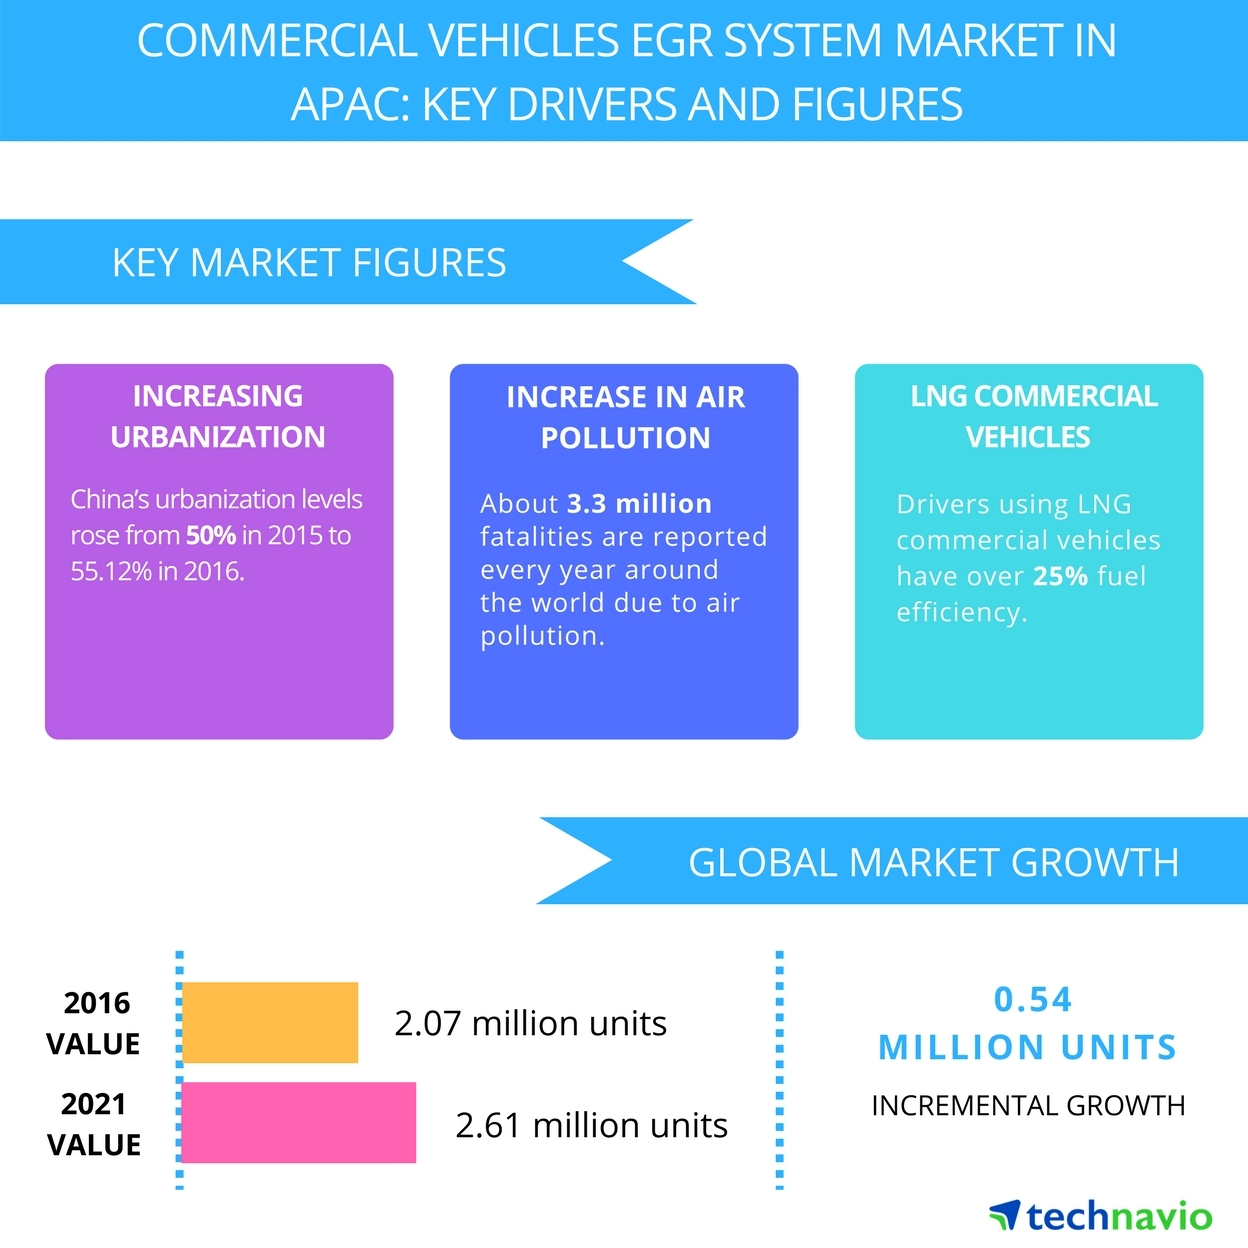 Technavio has published a new report on the commercial vehicle EGR system market in APAC from 2017-2021. (Graphic: Business Wire)